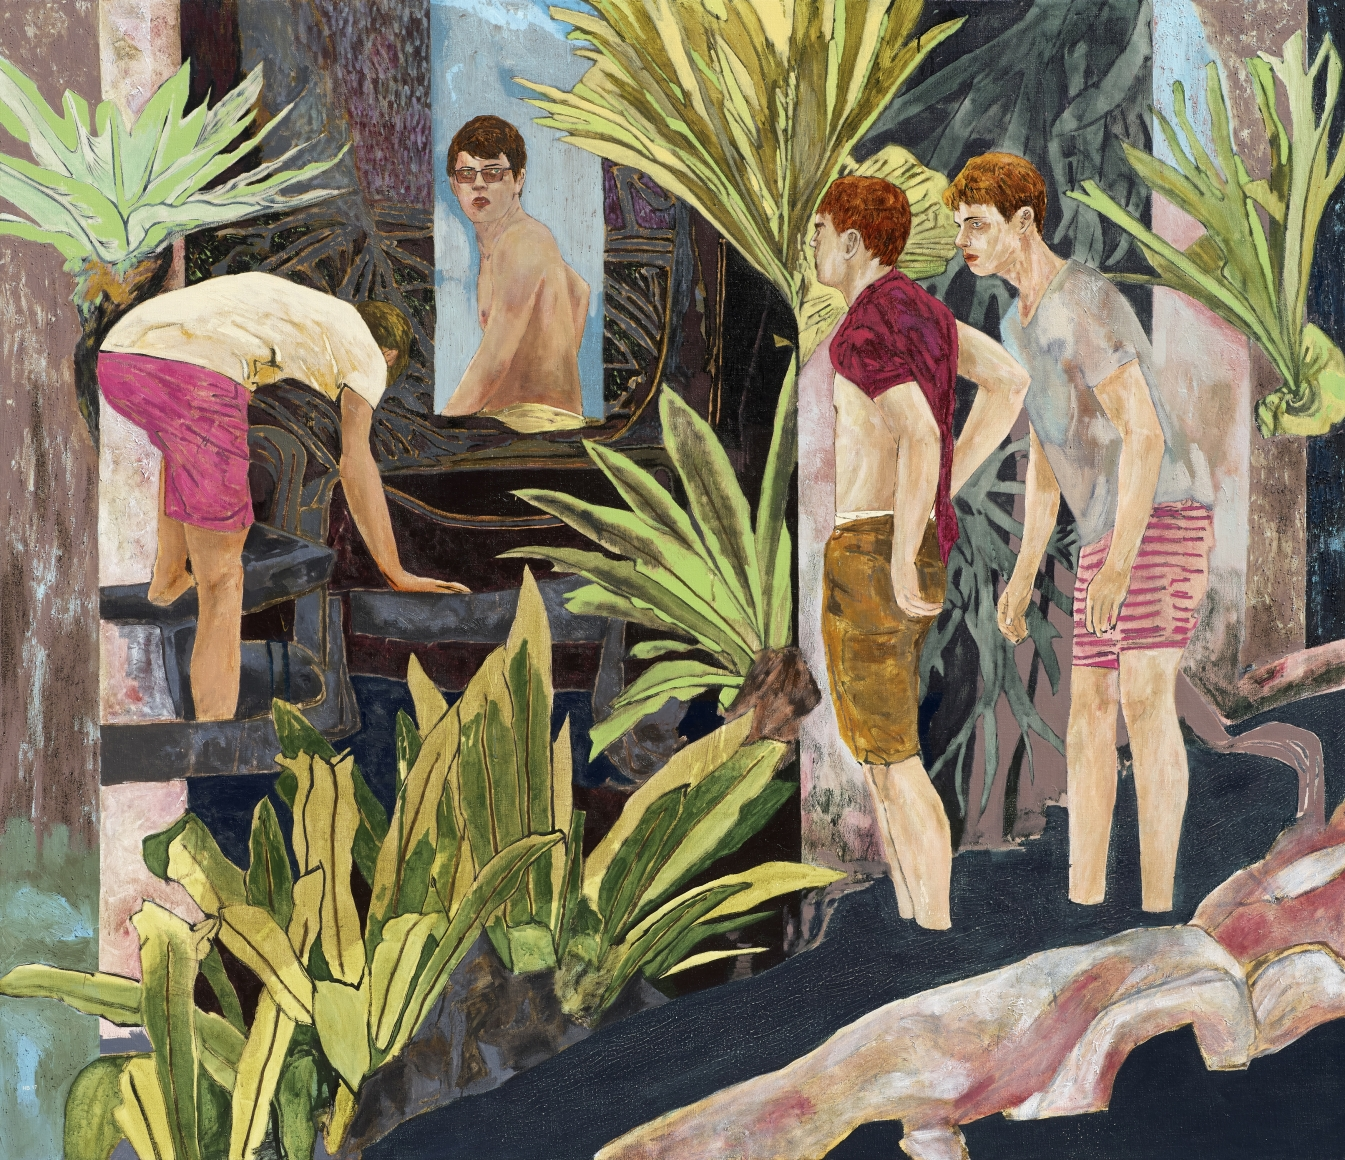 HERNAN BAS, four bathers by a river, 2017